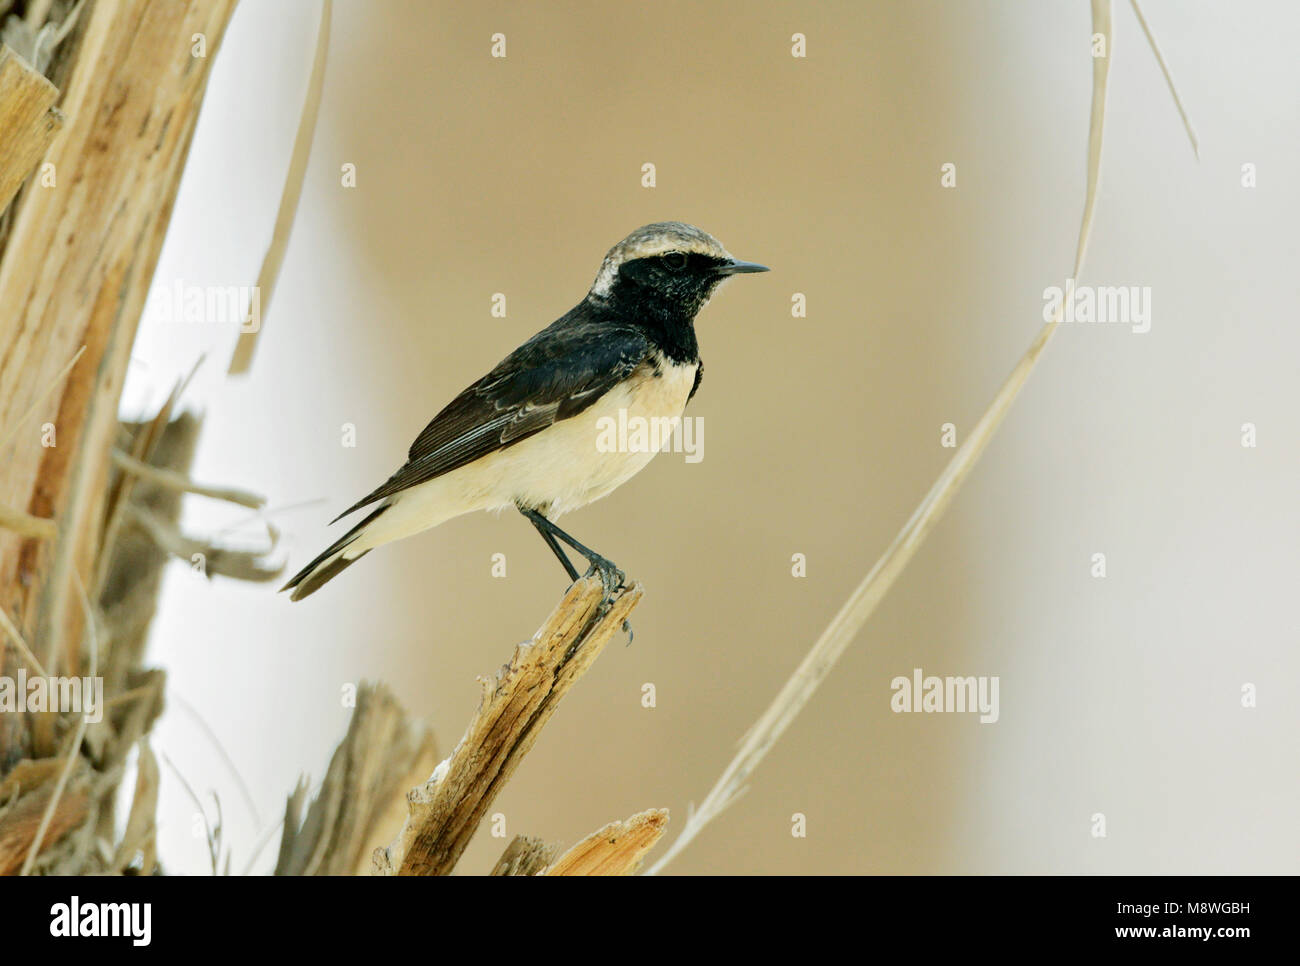 Cyprustapuit; Cyprus Wheatear; Oenanthe cypriaca; male Stock Photo